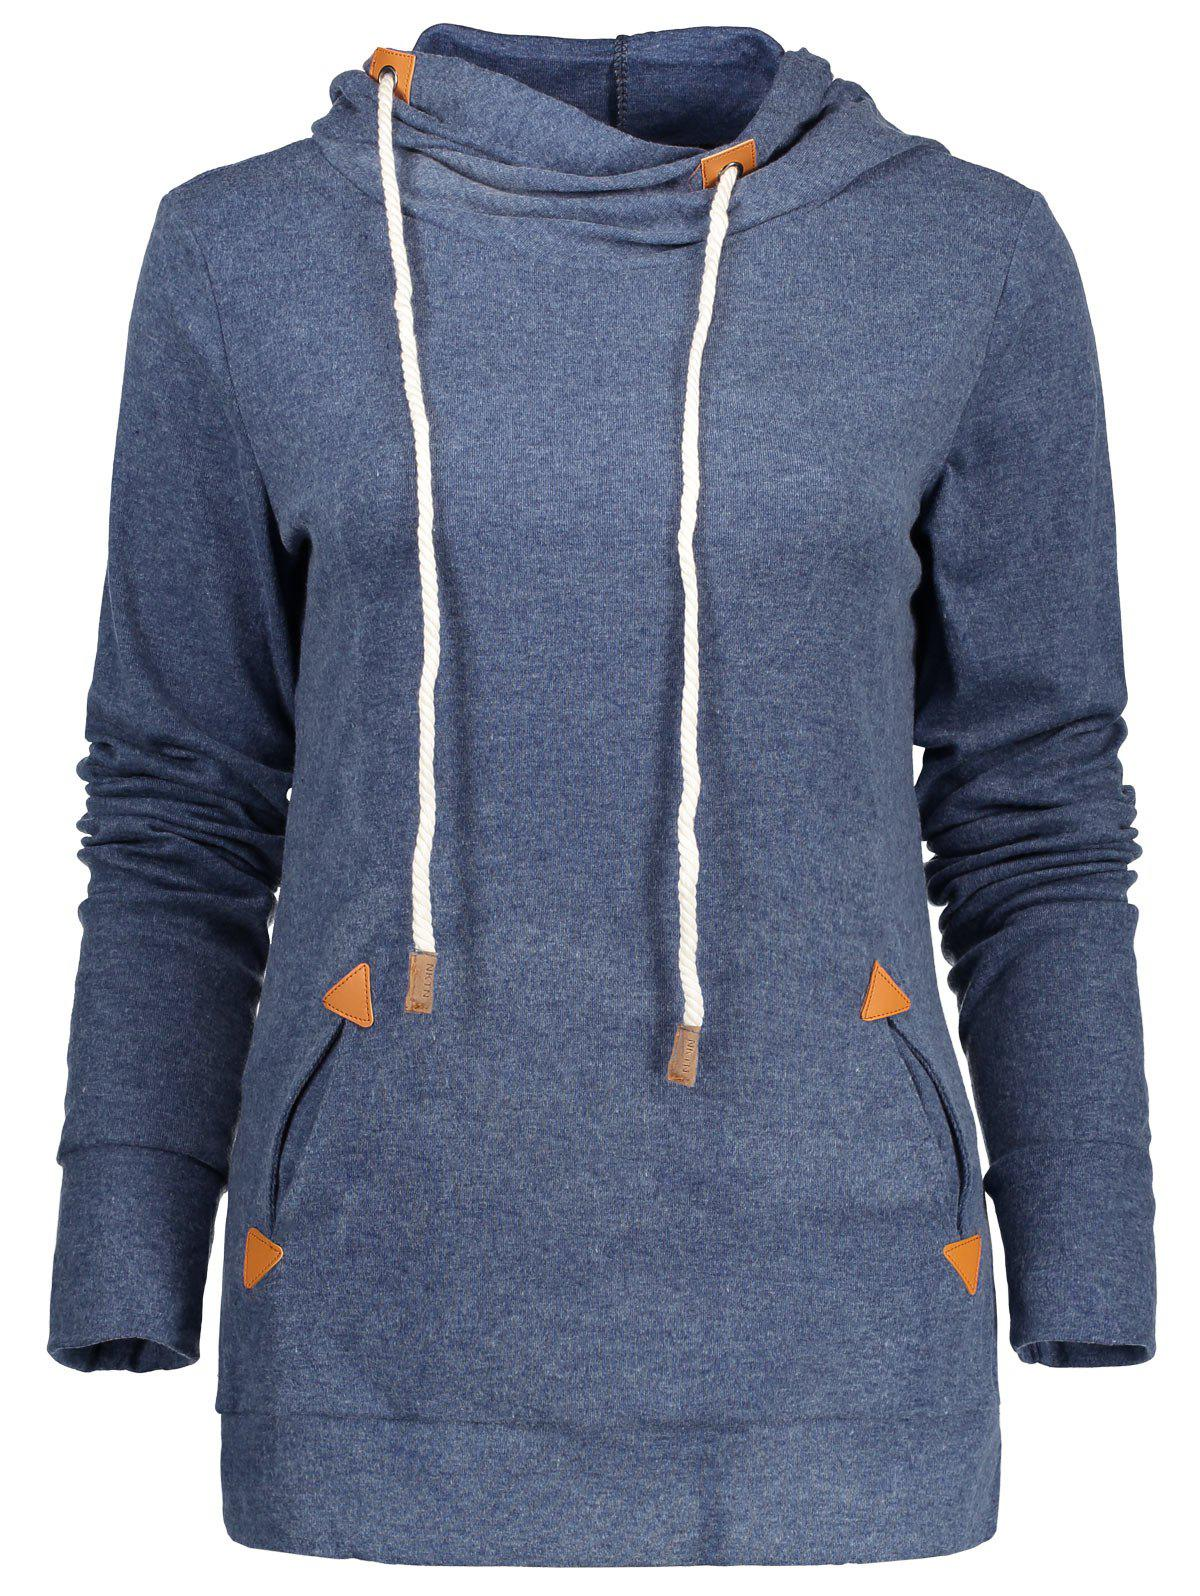 Stylish Hooded Long Sleeve Draped Spliced Womens HoodieWOMEN<br><br>Size: L; Color: BLUE; Material: Polyester; Shirt Length: Regular; Sleeve Length: Full; Style: Fashion; Pattern Style: Patchwork; Weight: 0.365kg; Package Contents: 1 x Hoodie;